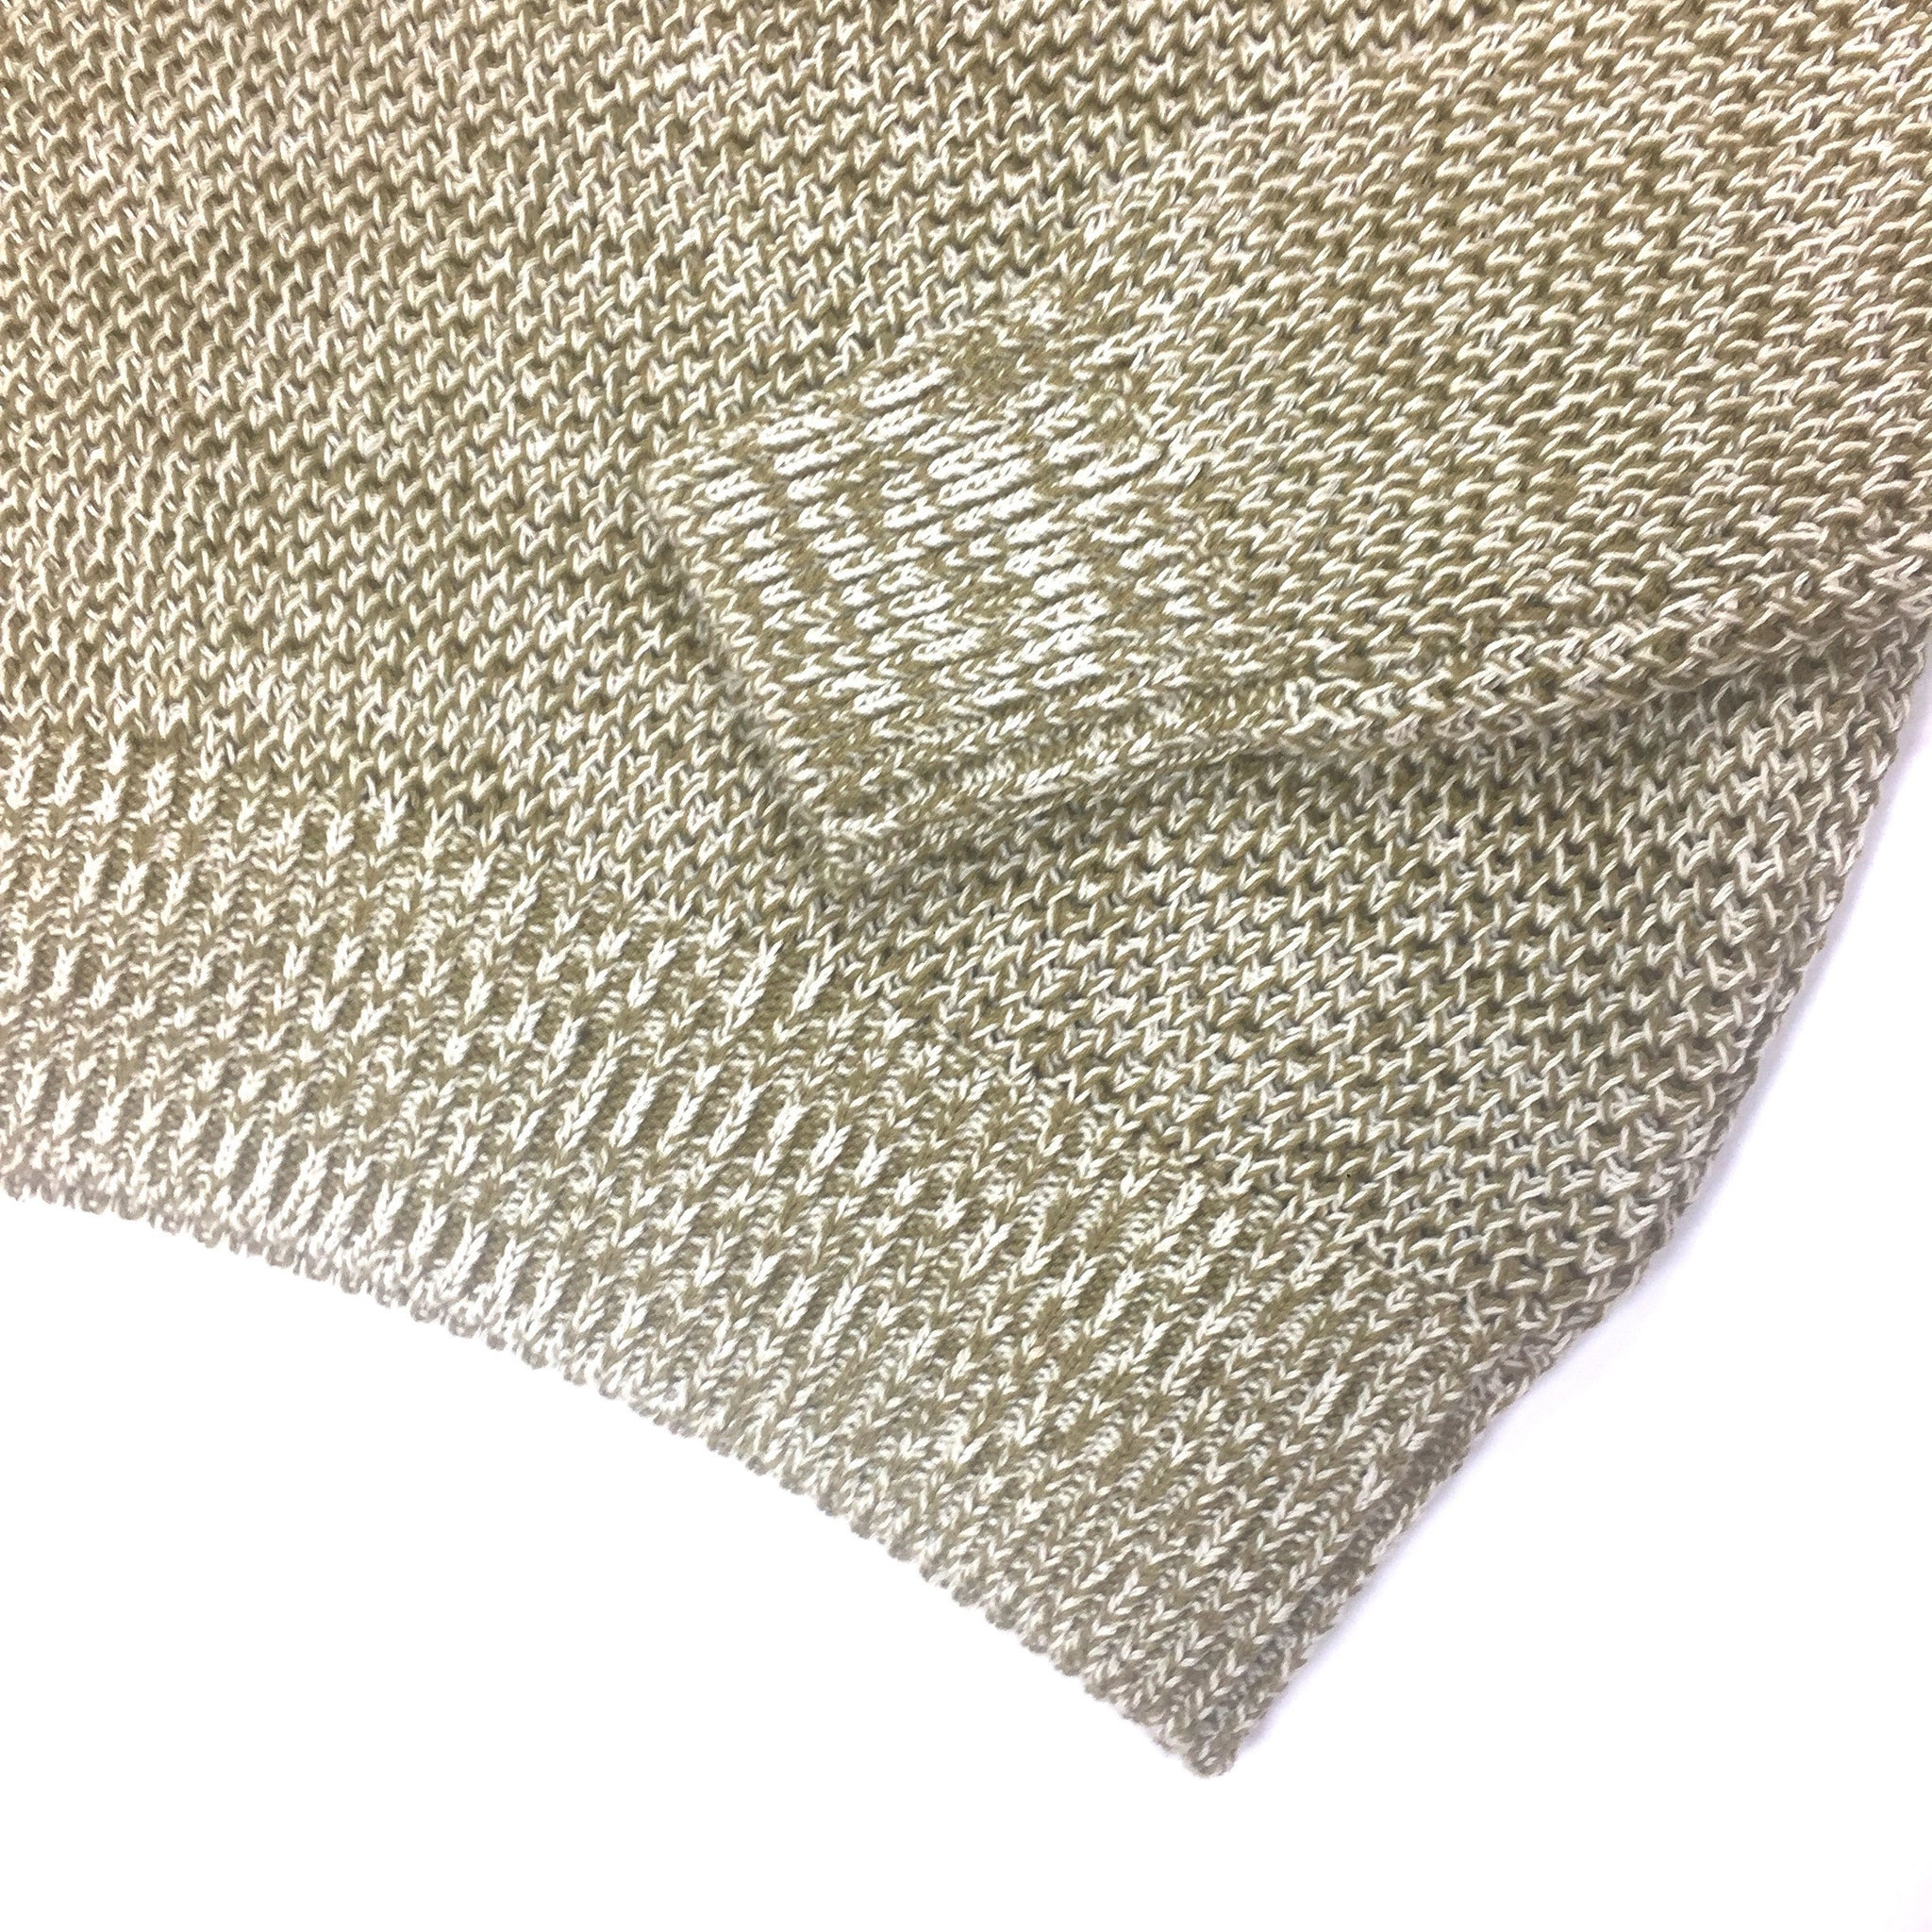 Belstaff - Olive & Beige Knit Sweater